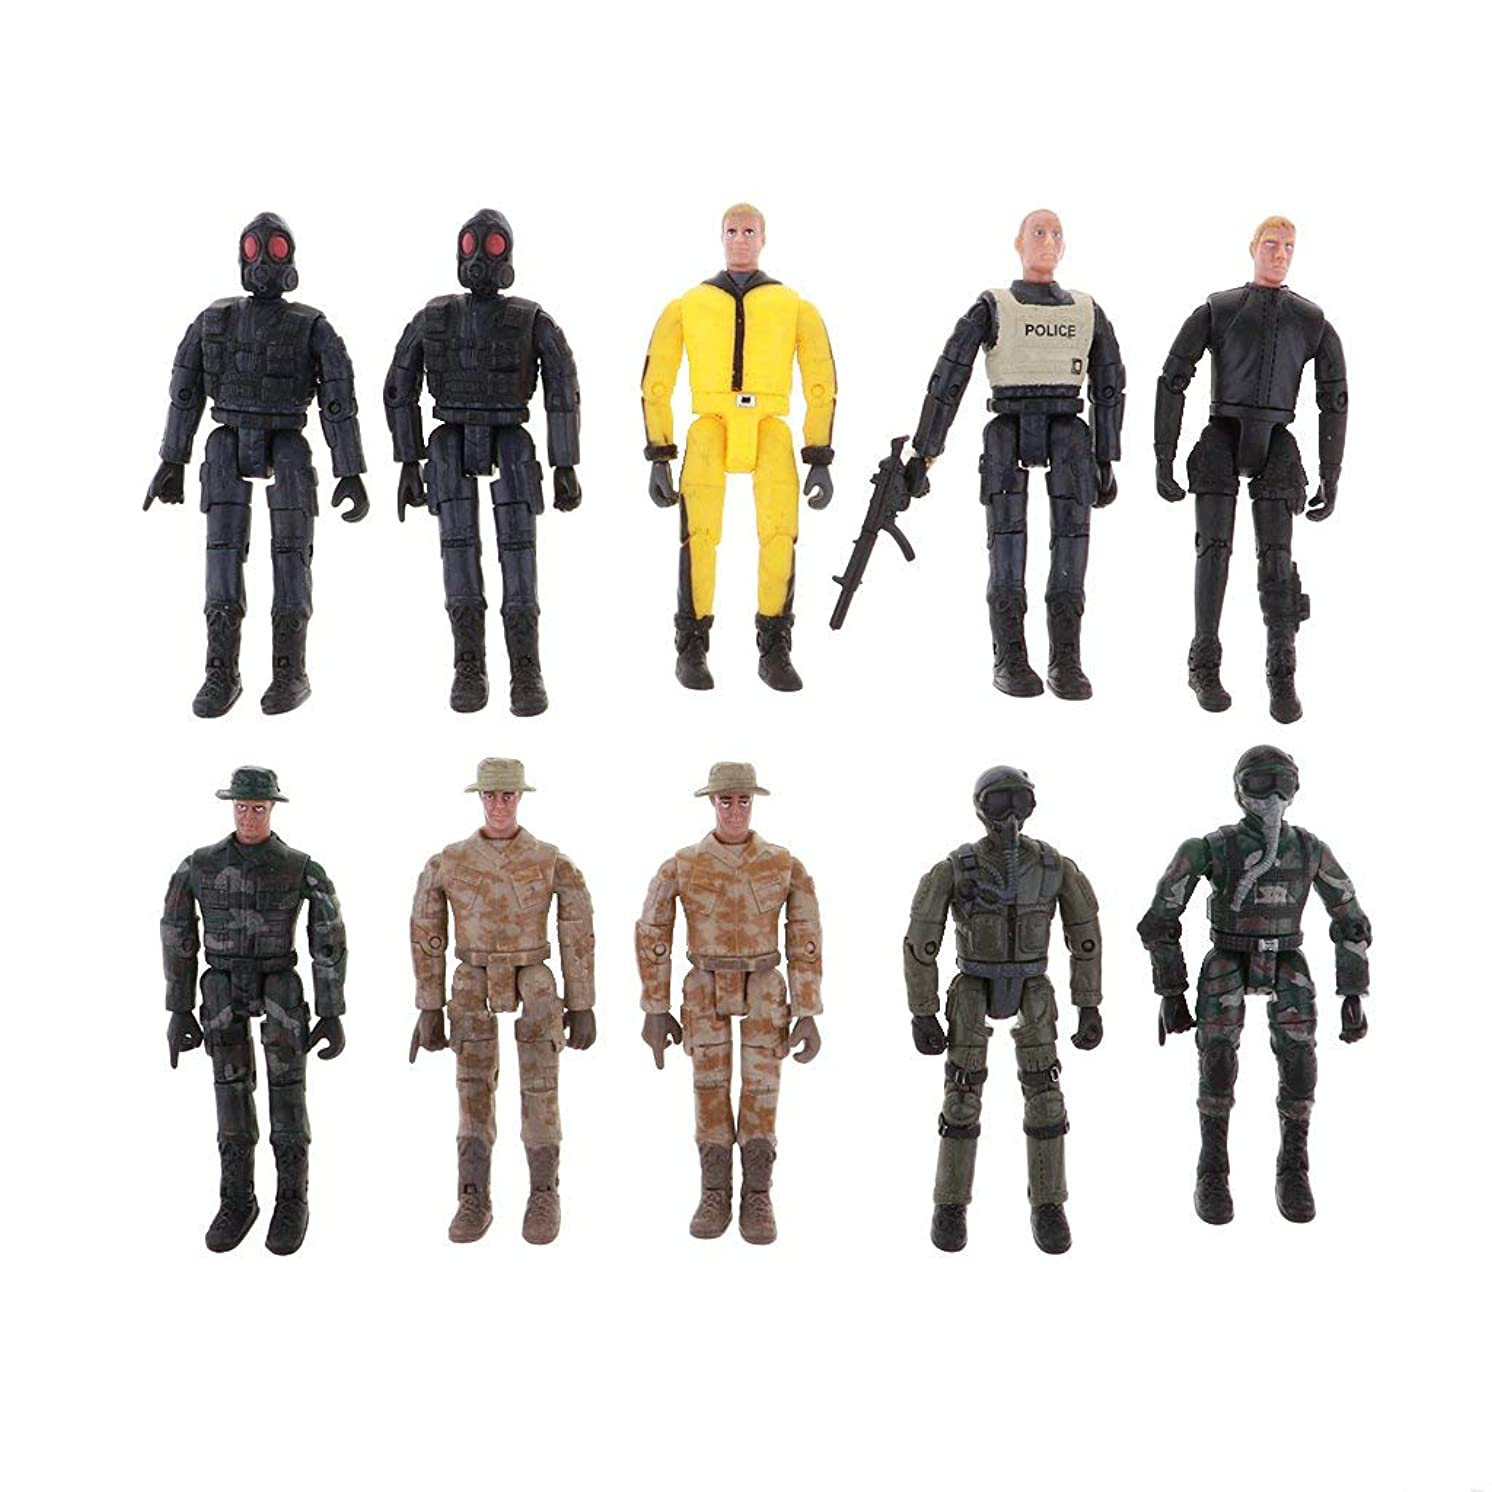 FRECI 10pcs Military Model Soldiers Figures Model Building Kits DIY Layout Scenery